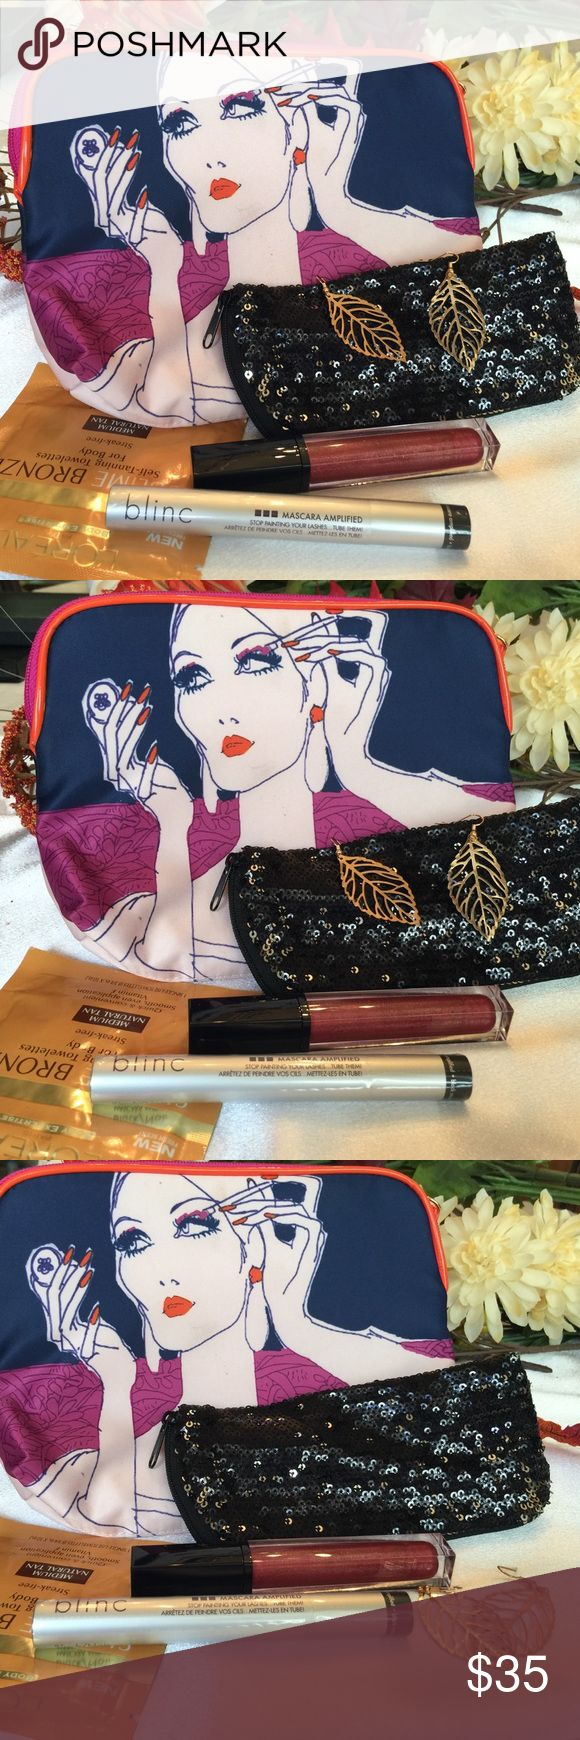 Mary's Subscription Box NWOT I am addicted to subscription boxes so am making one for you. Not really subscription just (1). Ester Lauder make-up bag• Estée Lauder Pure Color Envy lipstick in Flirtatious Magenta• blinc mascara amplified in black• Glitzy glass case or make-up case for your evening bag• L'Oréal Sublime Bronze self-tanning towelettes for body in medium natural tan• Gold Leaf Euro wire earrings. 🎀🎀 Boutique Makeup